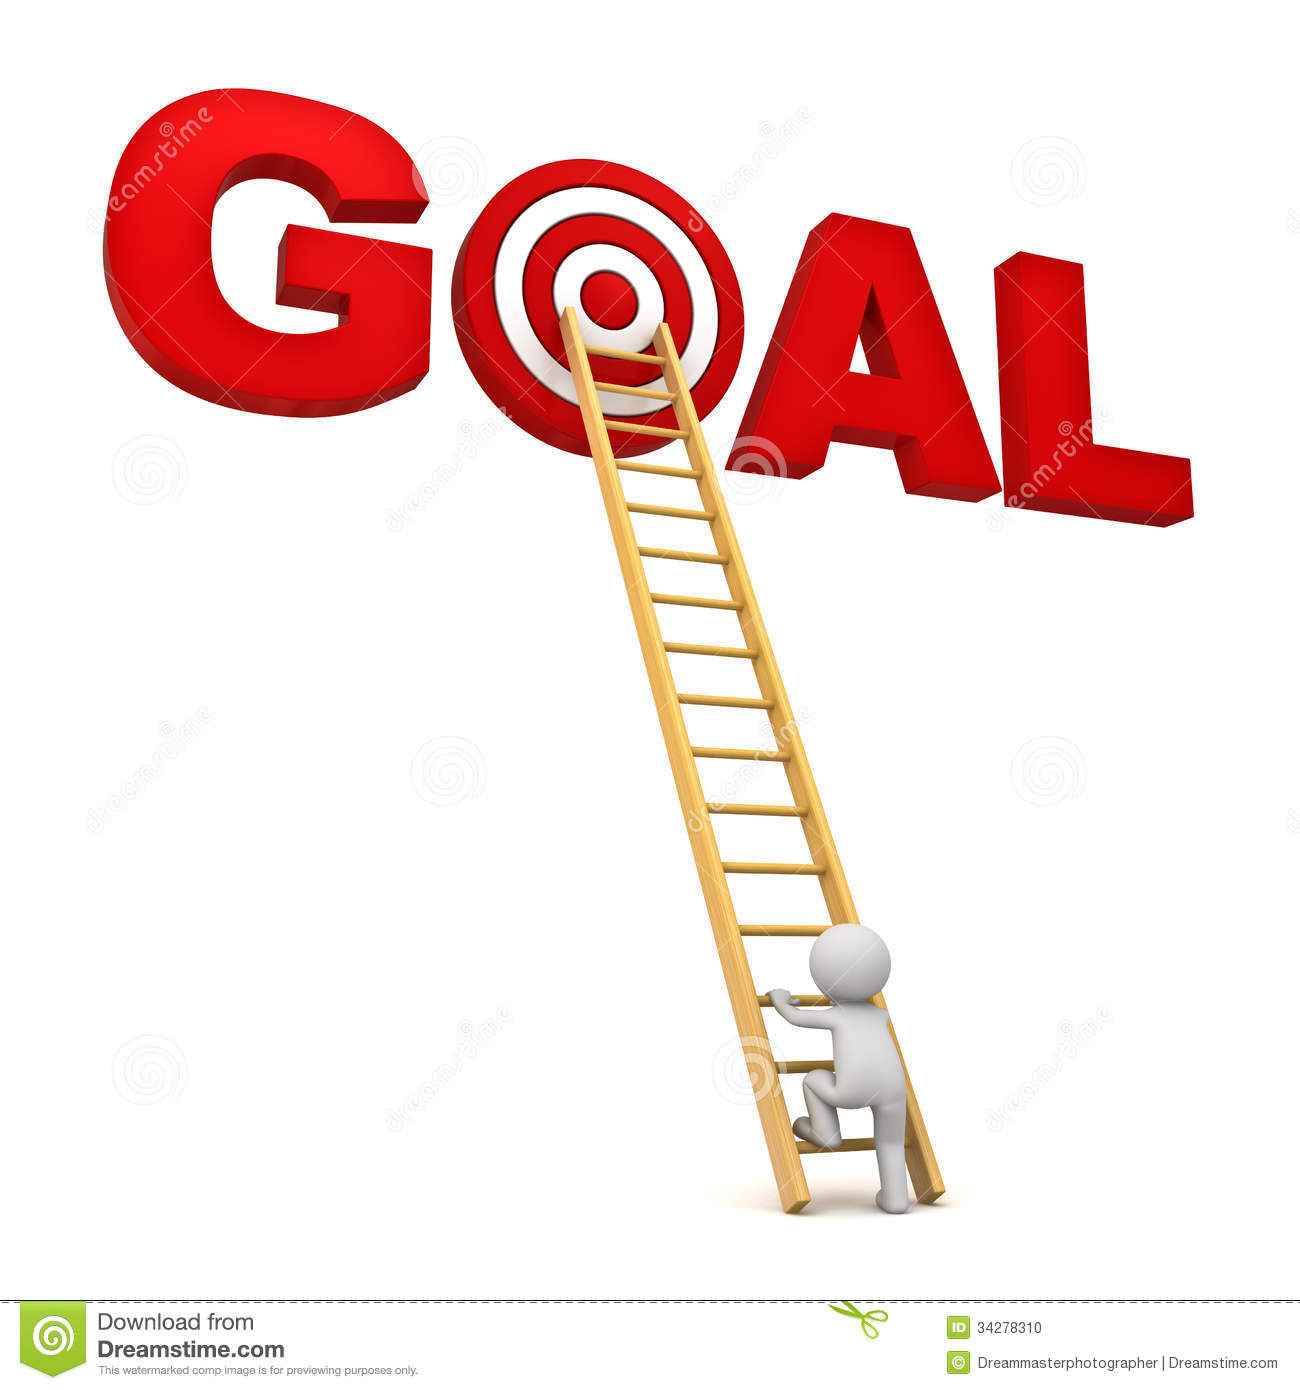 Achieving Goals Clipart.